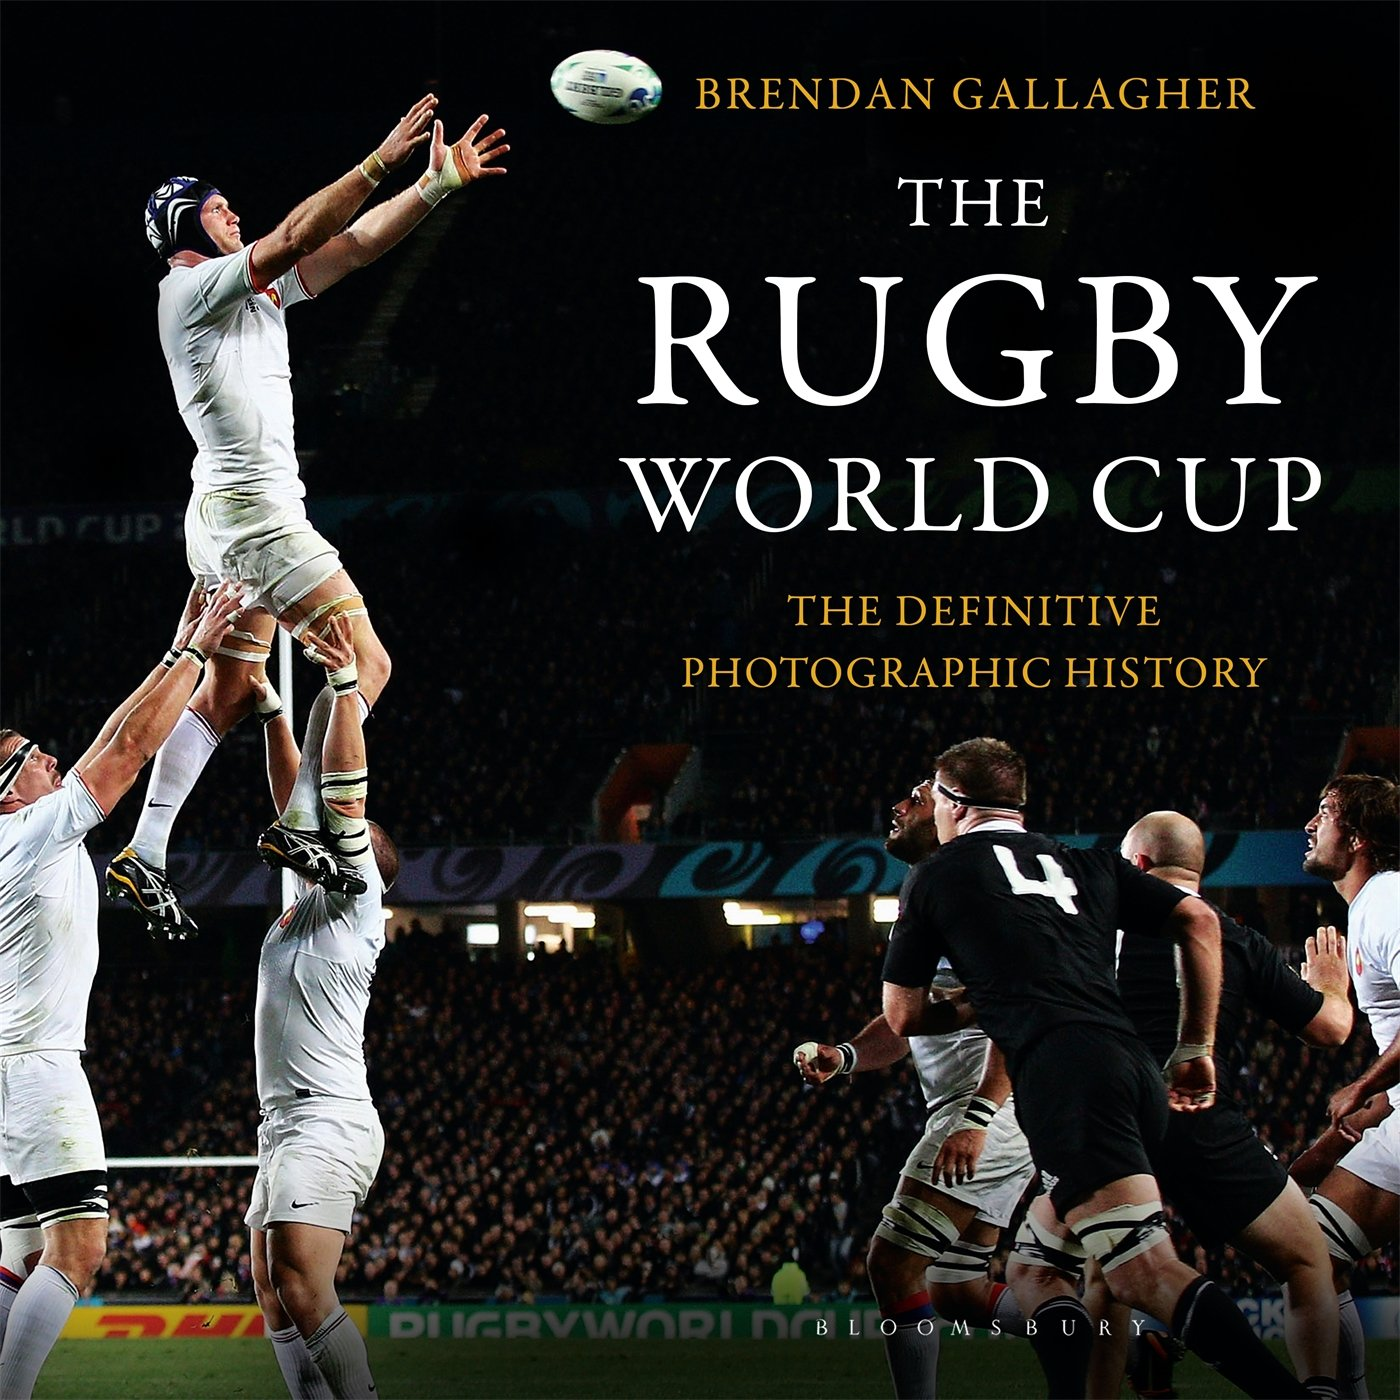 The Rugby World Cup The Definitive Photographic History Gallagher Brendan Woodward Clive 0001472912624 Amazon Com Books